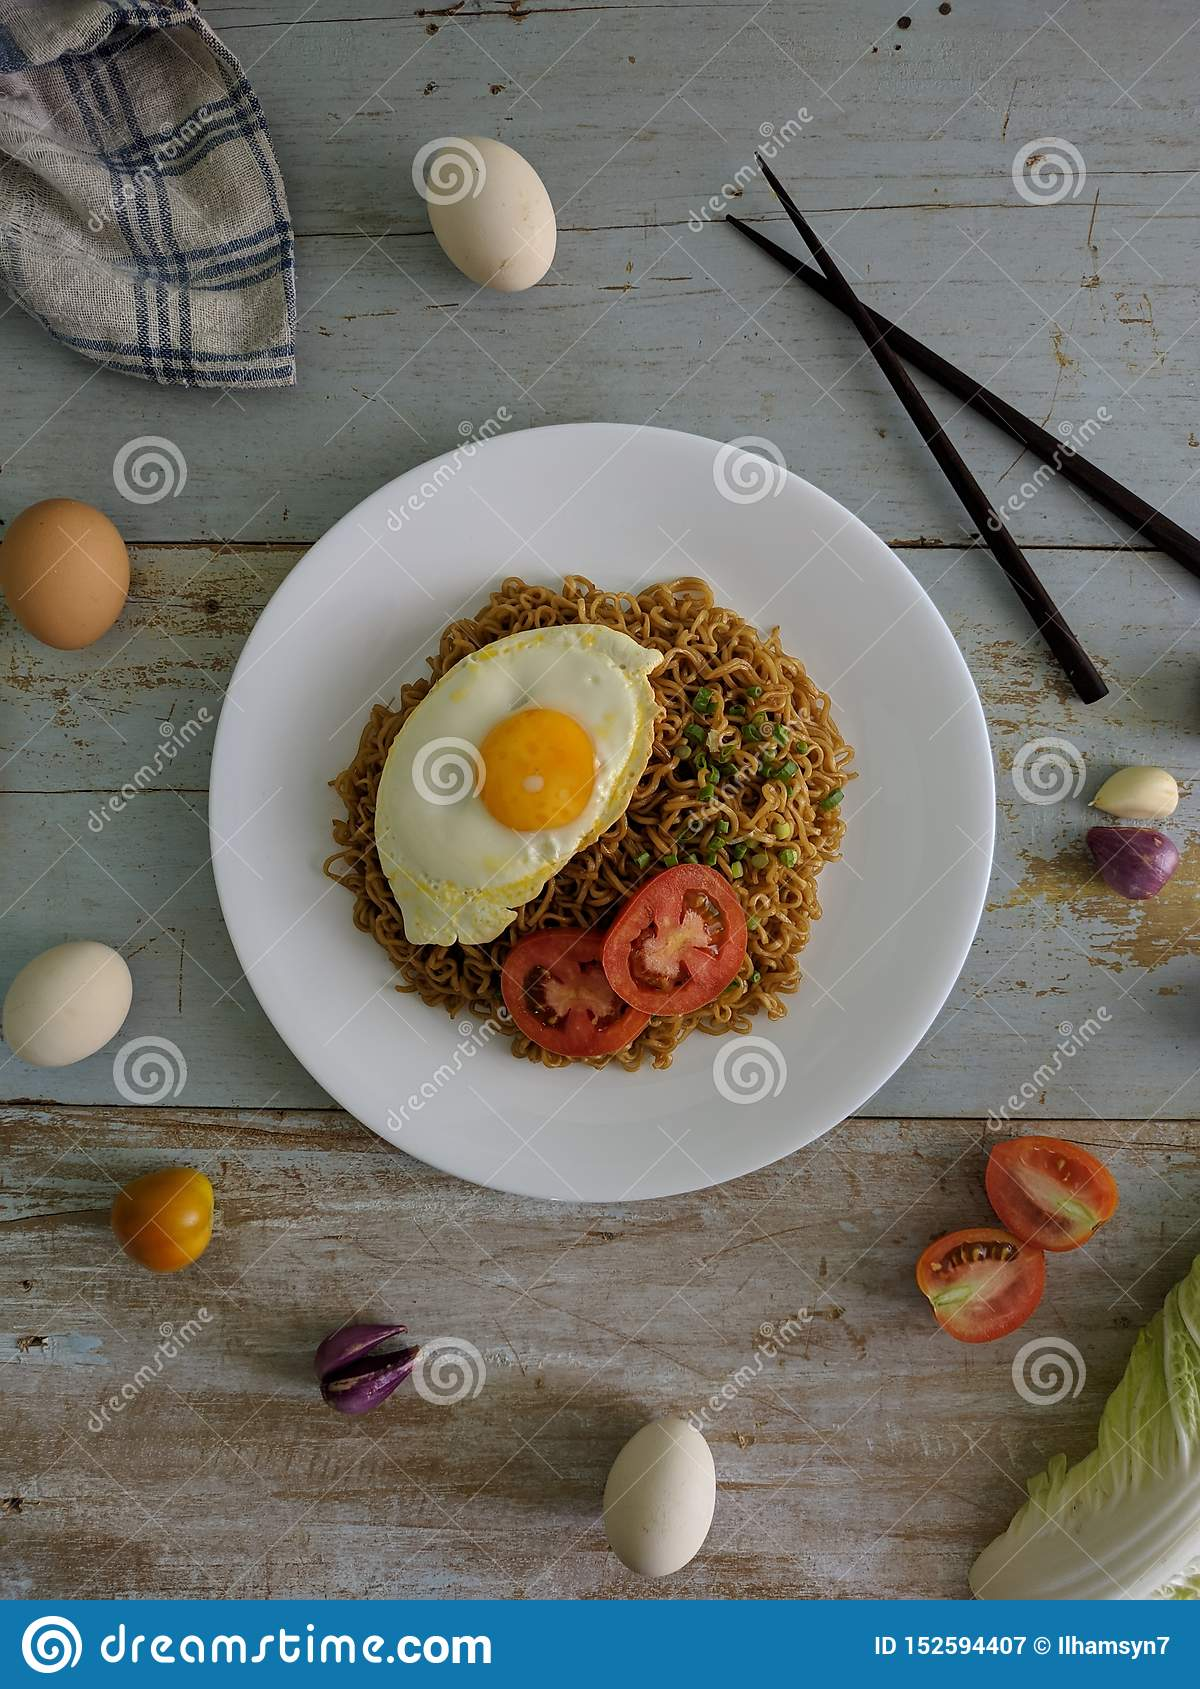 Fried noodles served with fried egg. Food flat lay concept. From top view on wood background